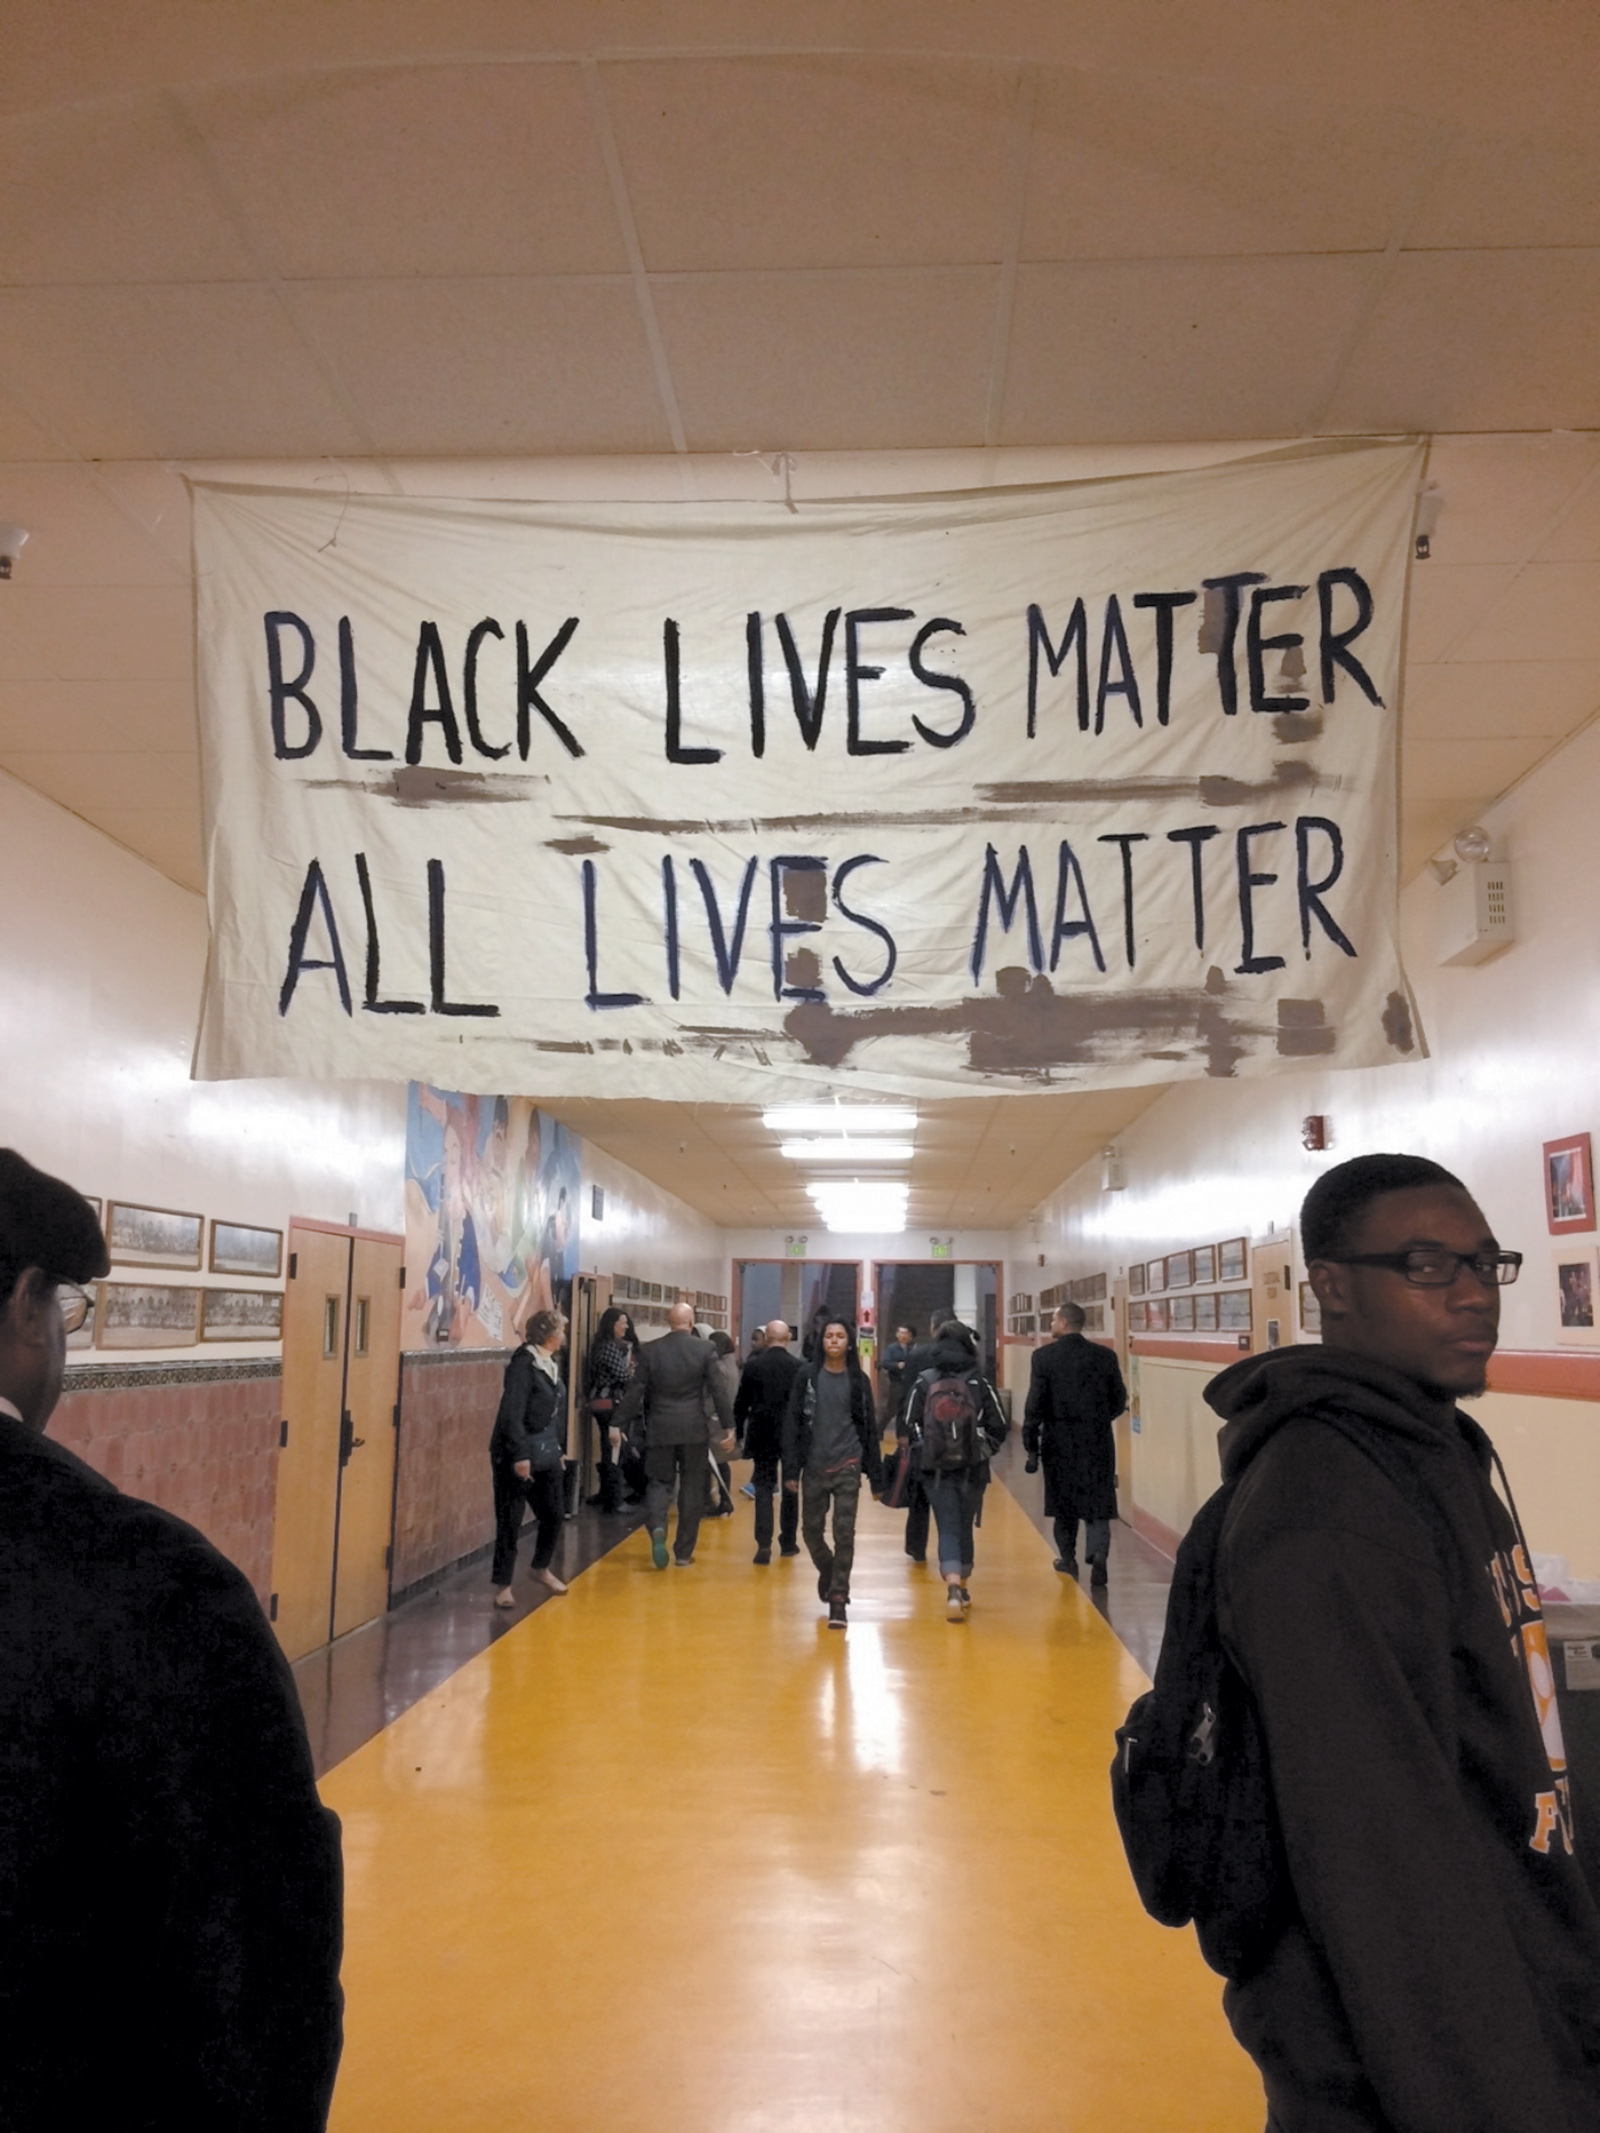 Students at Mission High School in San Francisco on the day of a forum for students citywide to discuss racial inequality and police brutality, December 2014. Organized by Mission High's black student union and the NAACP, the panel included Michael Brown Sr., whose son was shot and killed by a police officer in Ferguson, Missouri, that summer.